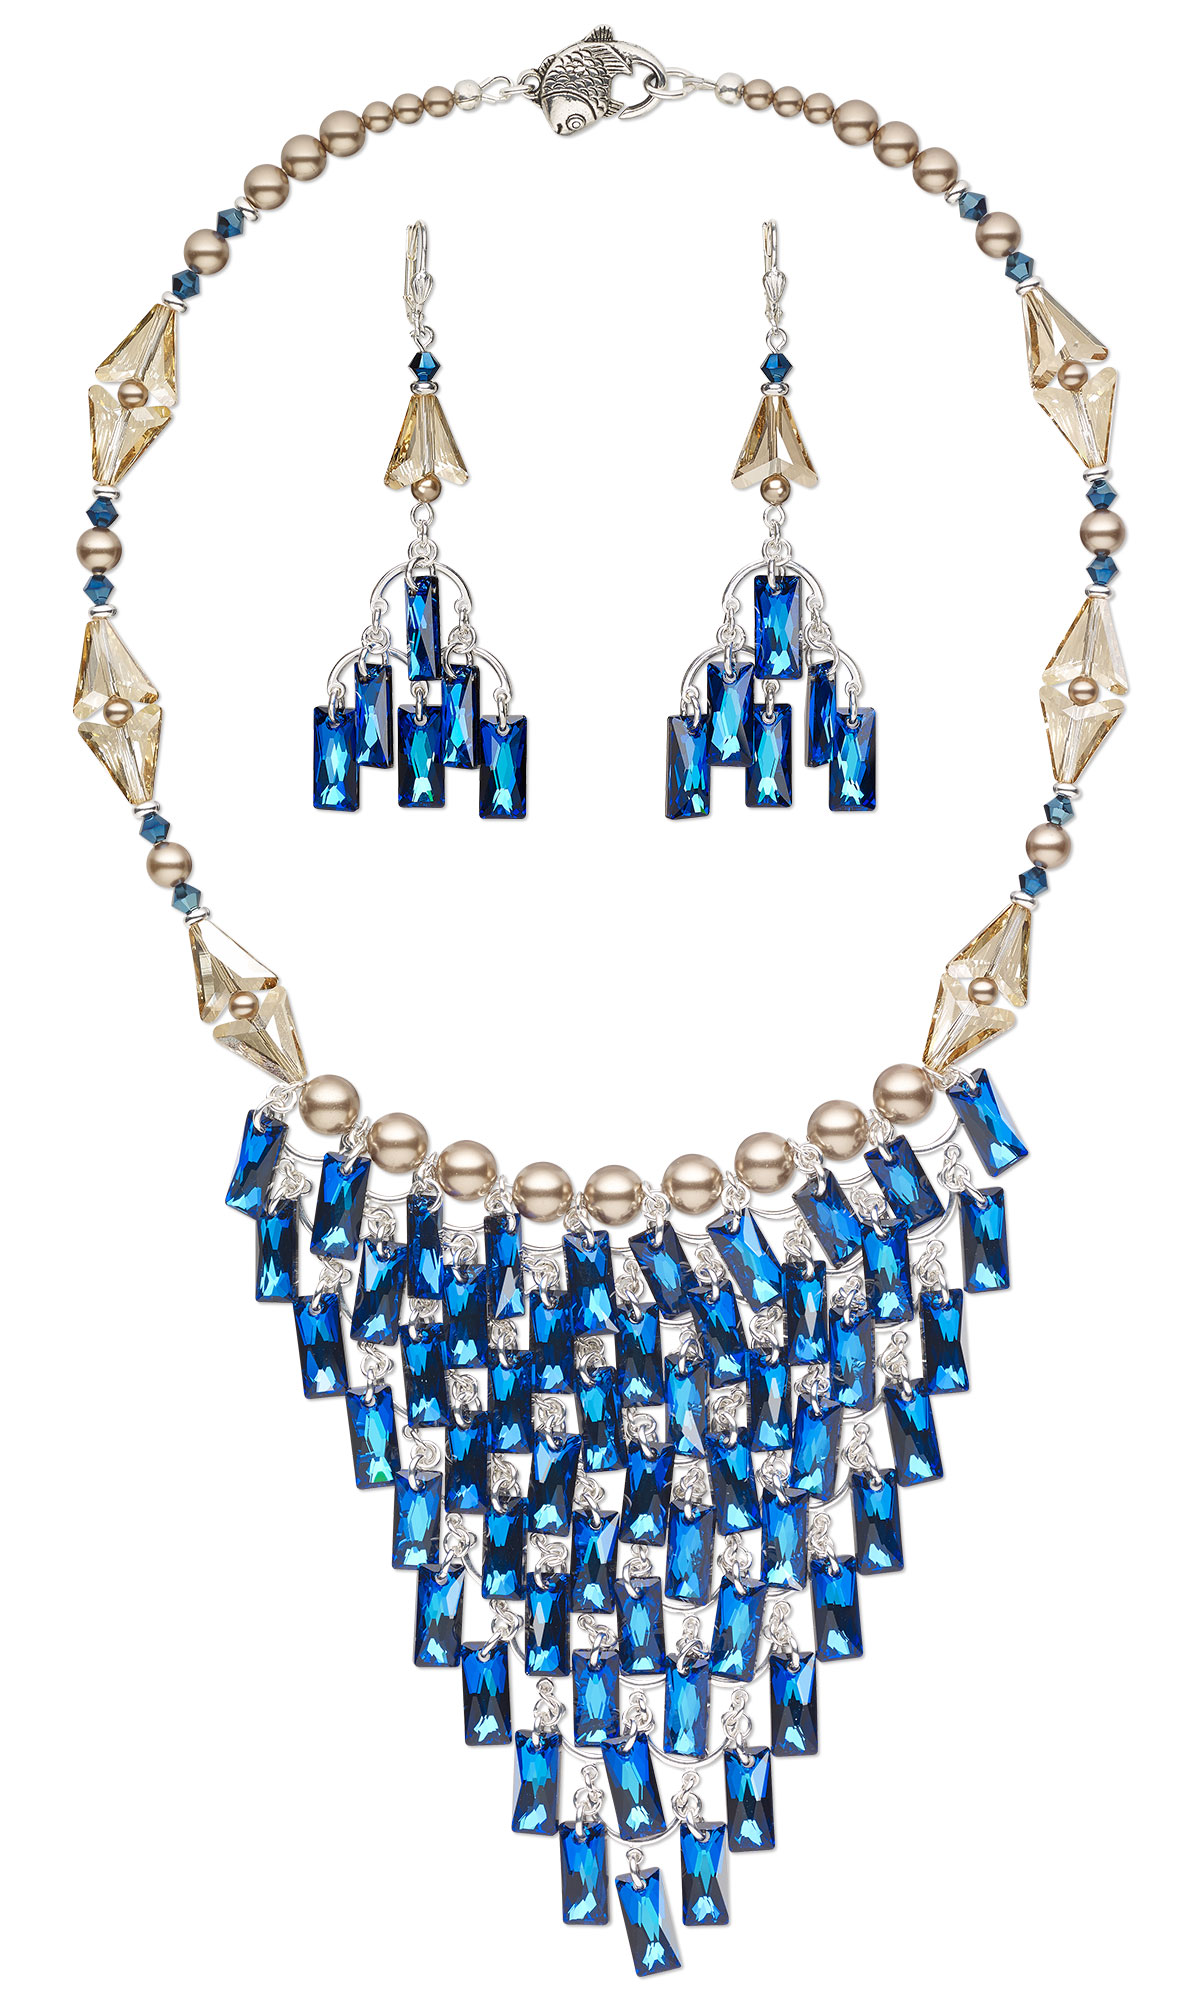 Jewelry Design Bib Style Necklace And Earrings With